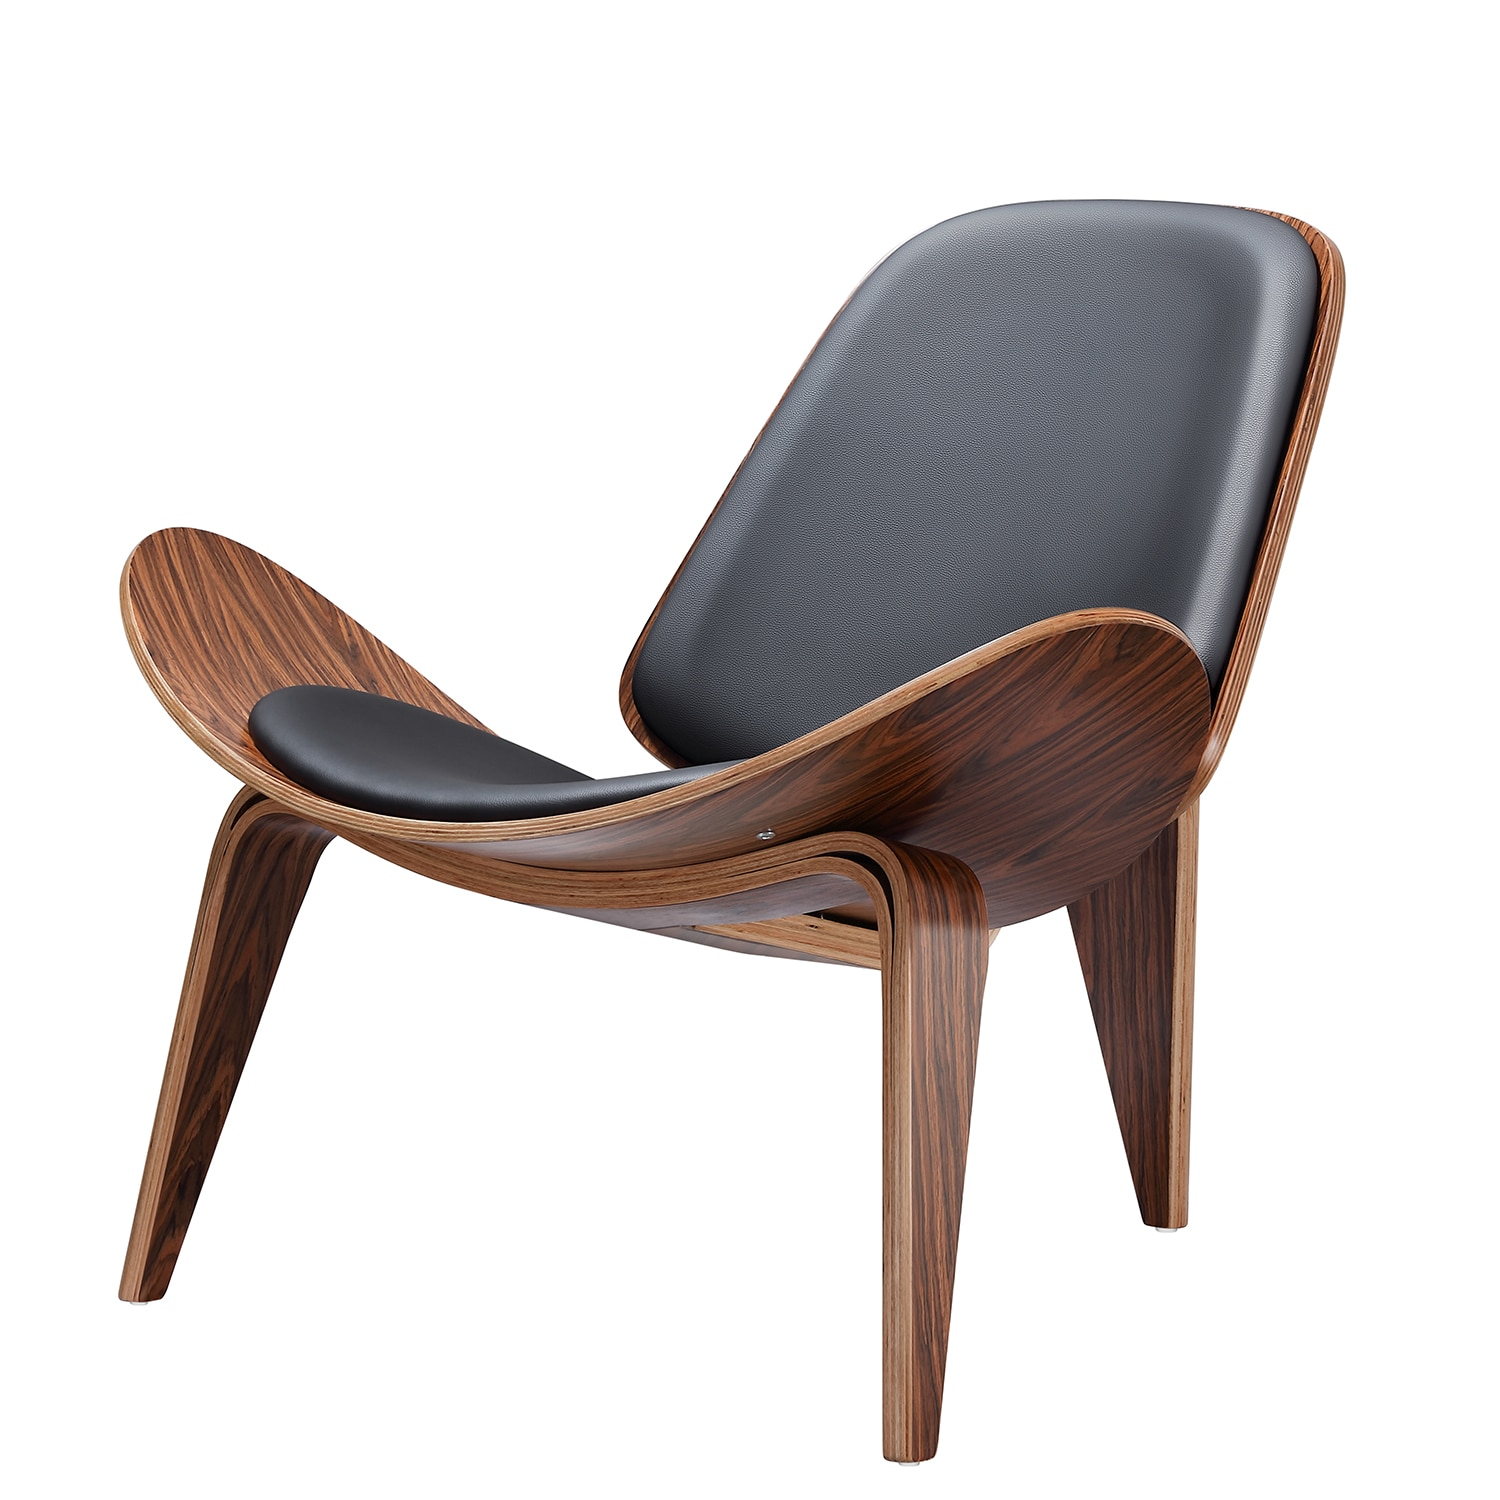 Hd8dbbbee639c475b9ee2cabba37748d6j - Design Furniture Bentwood Chair Hands Wegner Replica Lounge Chair with PU Leather Seat Comfort Cushion Coffee Chair Office Chair